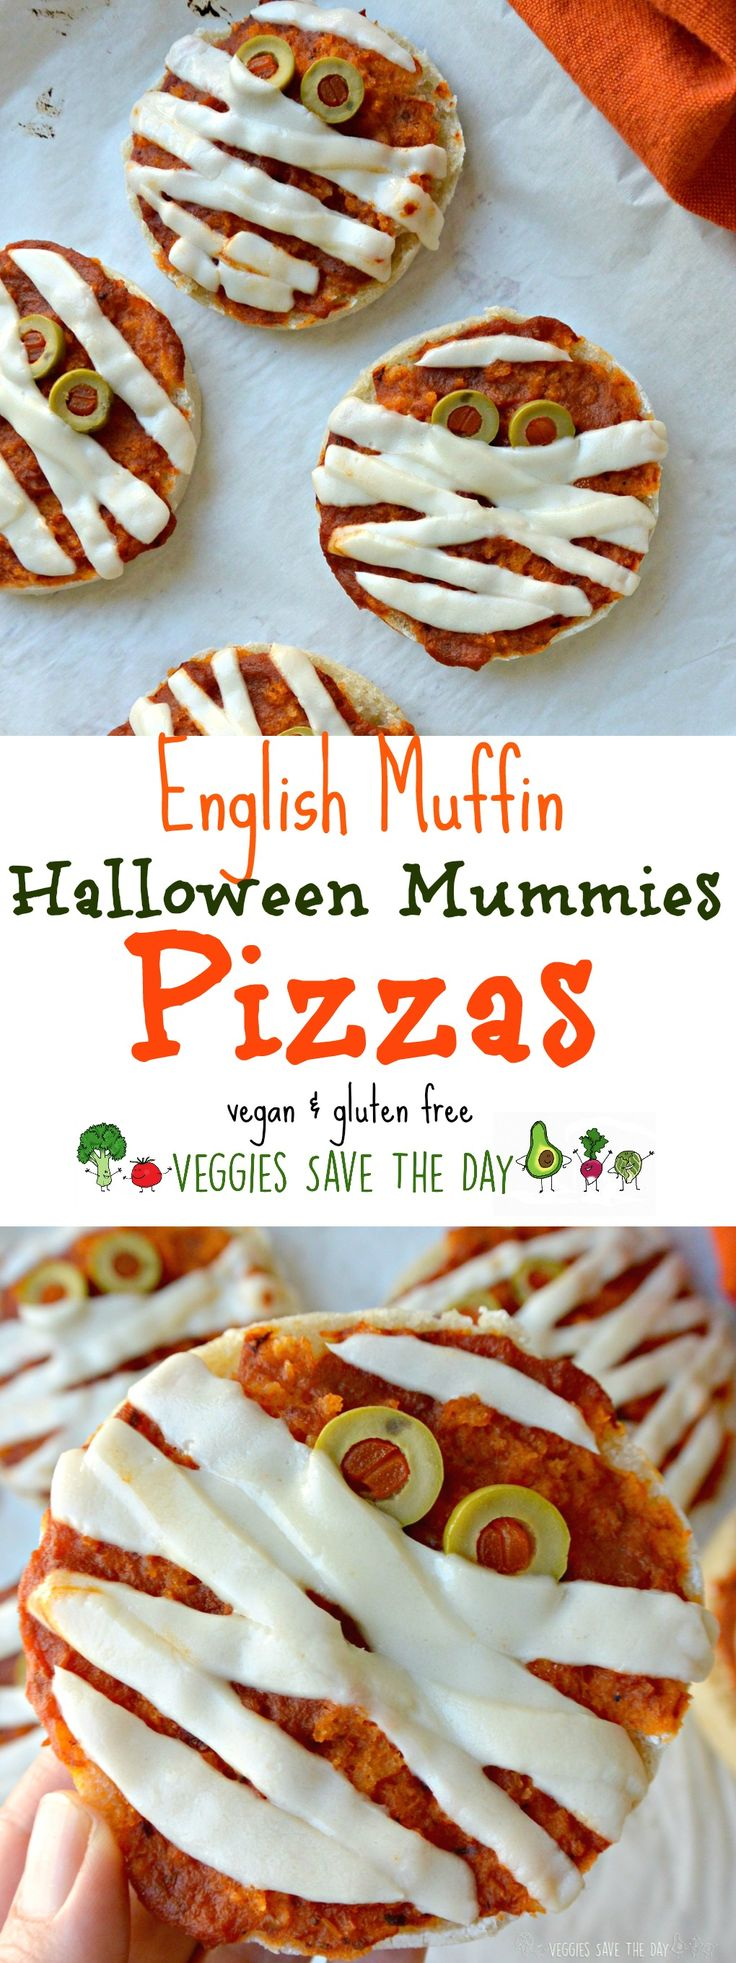 These English Muffin Pizzas are vegan and gluten free. Turn them into mini mummies for some Halloween fun!